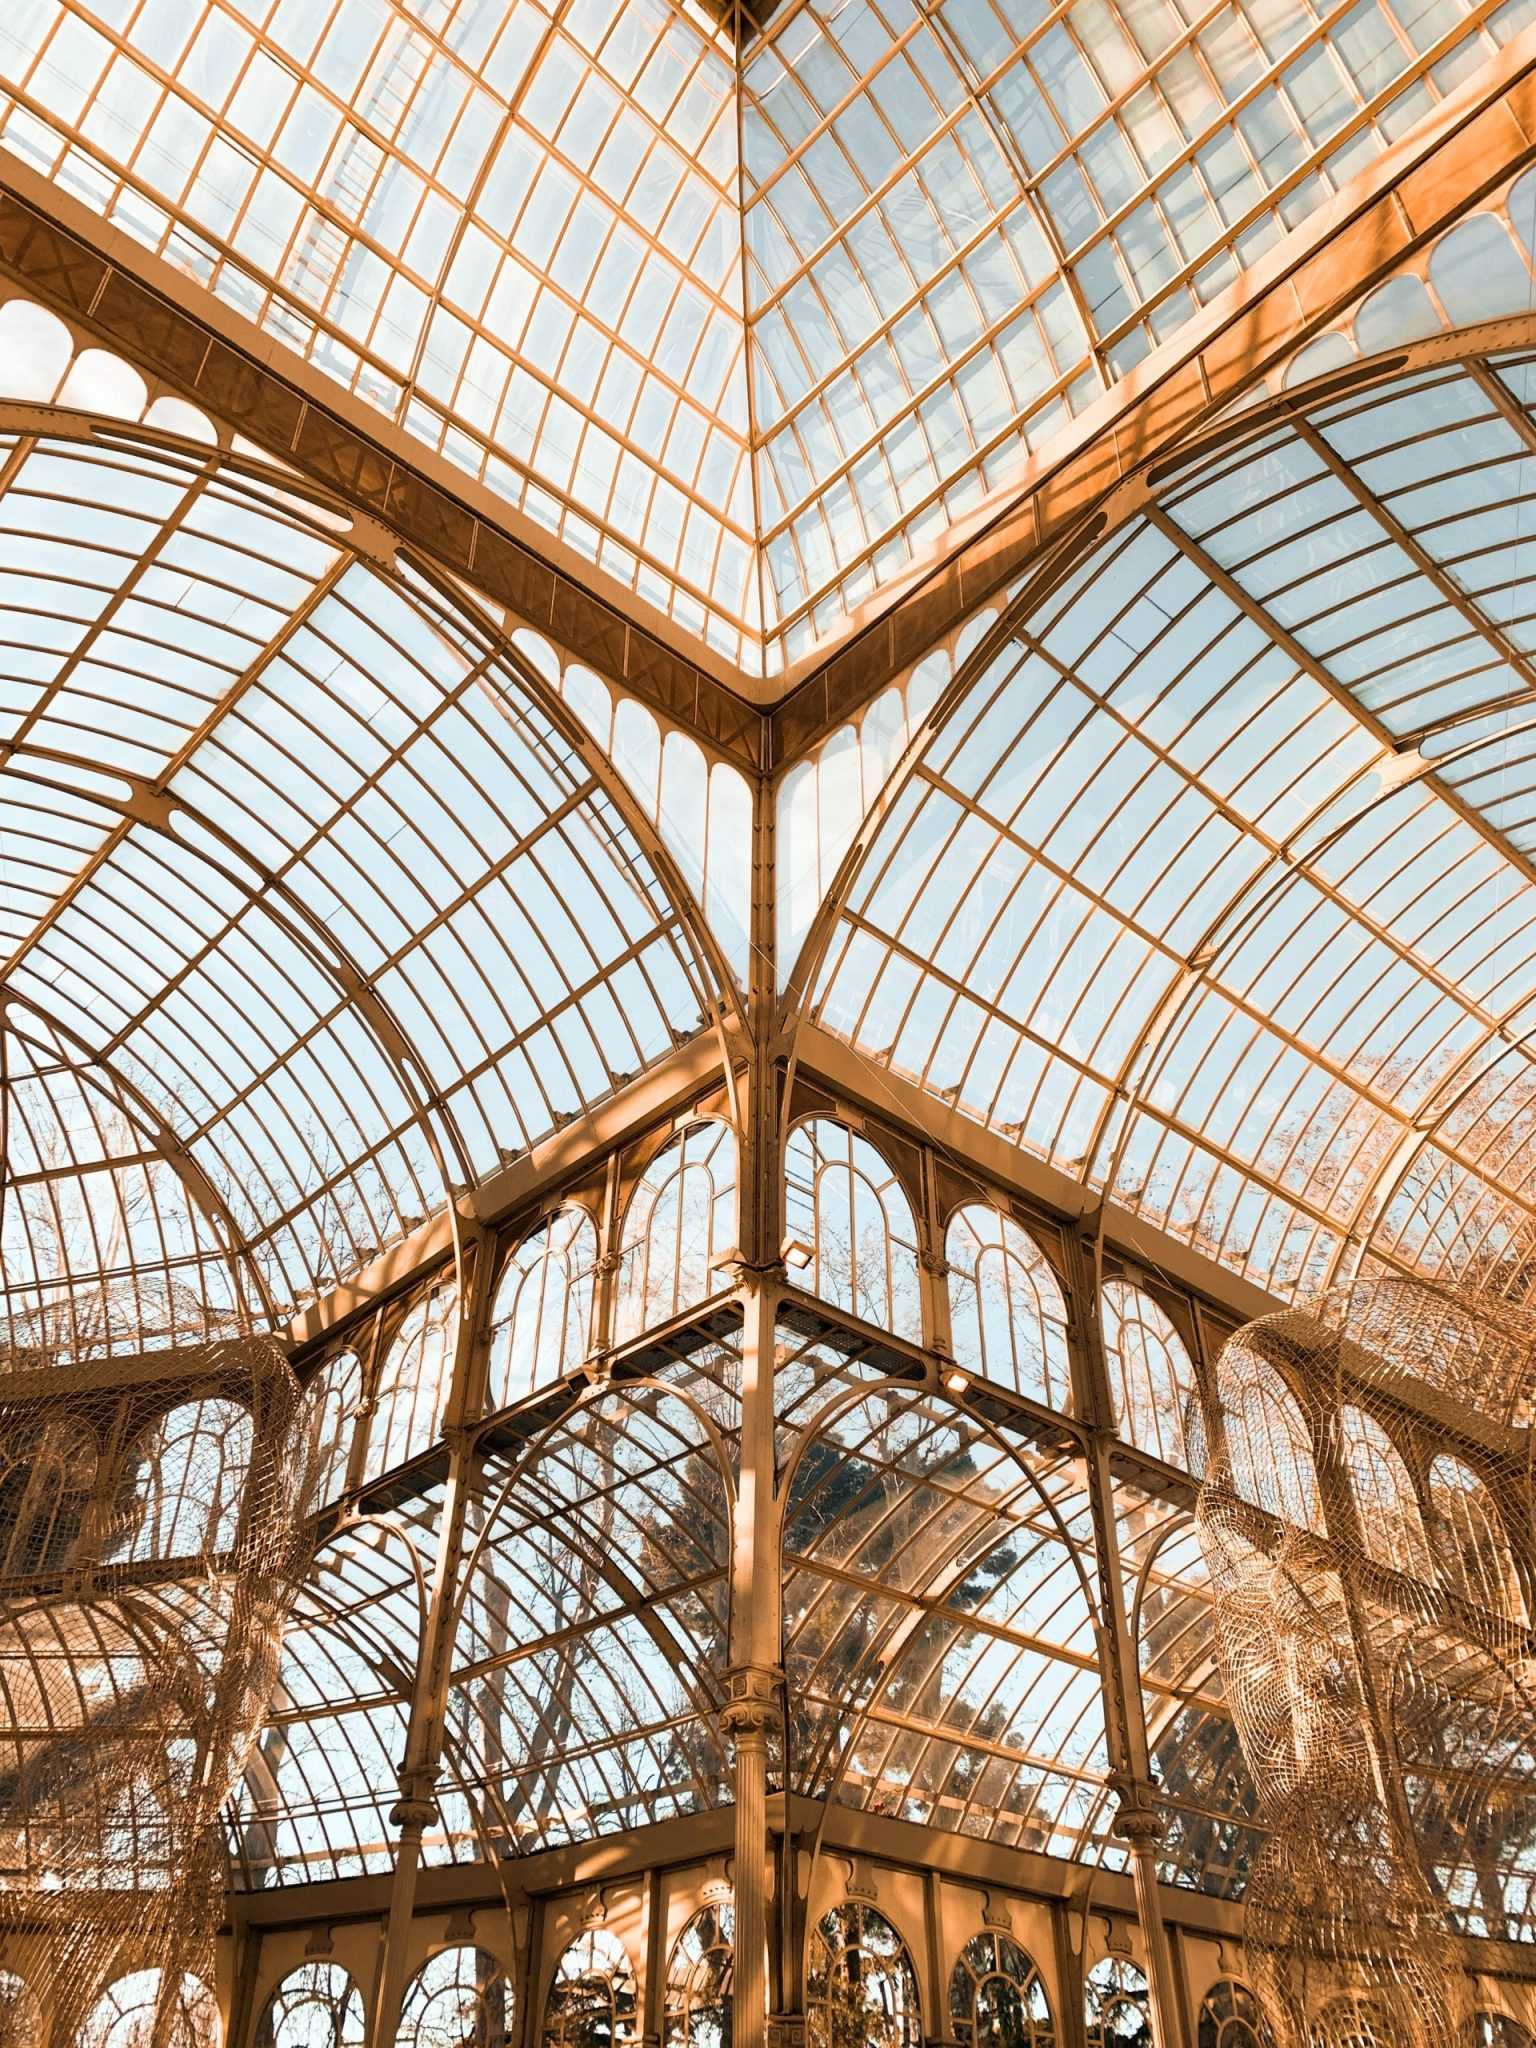 A photo of the Palacio de Cristal in Madrid, one of the perks Timisha experienced after she moved to Spain.